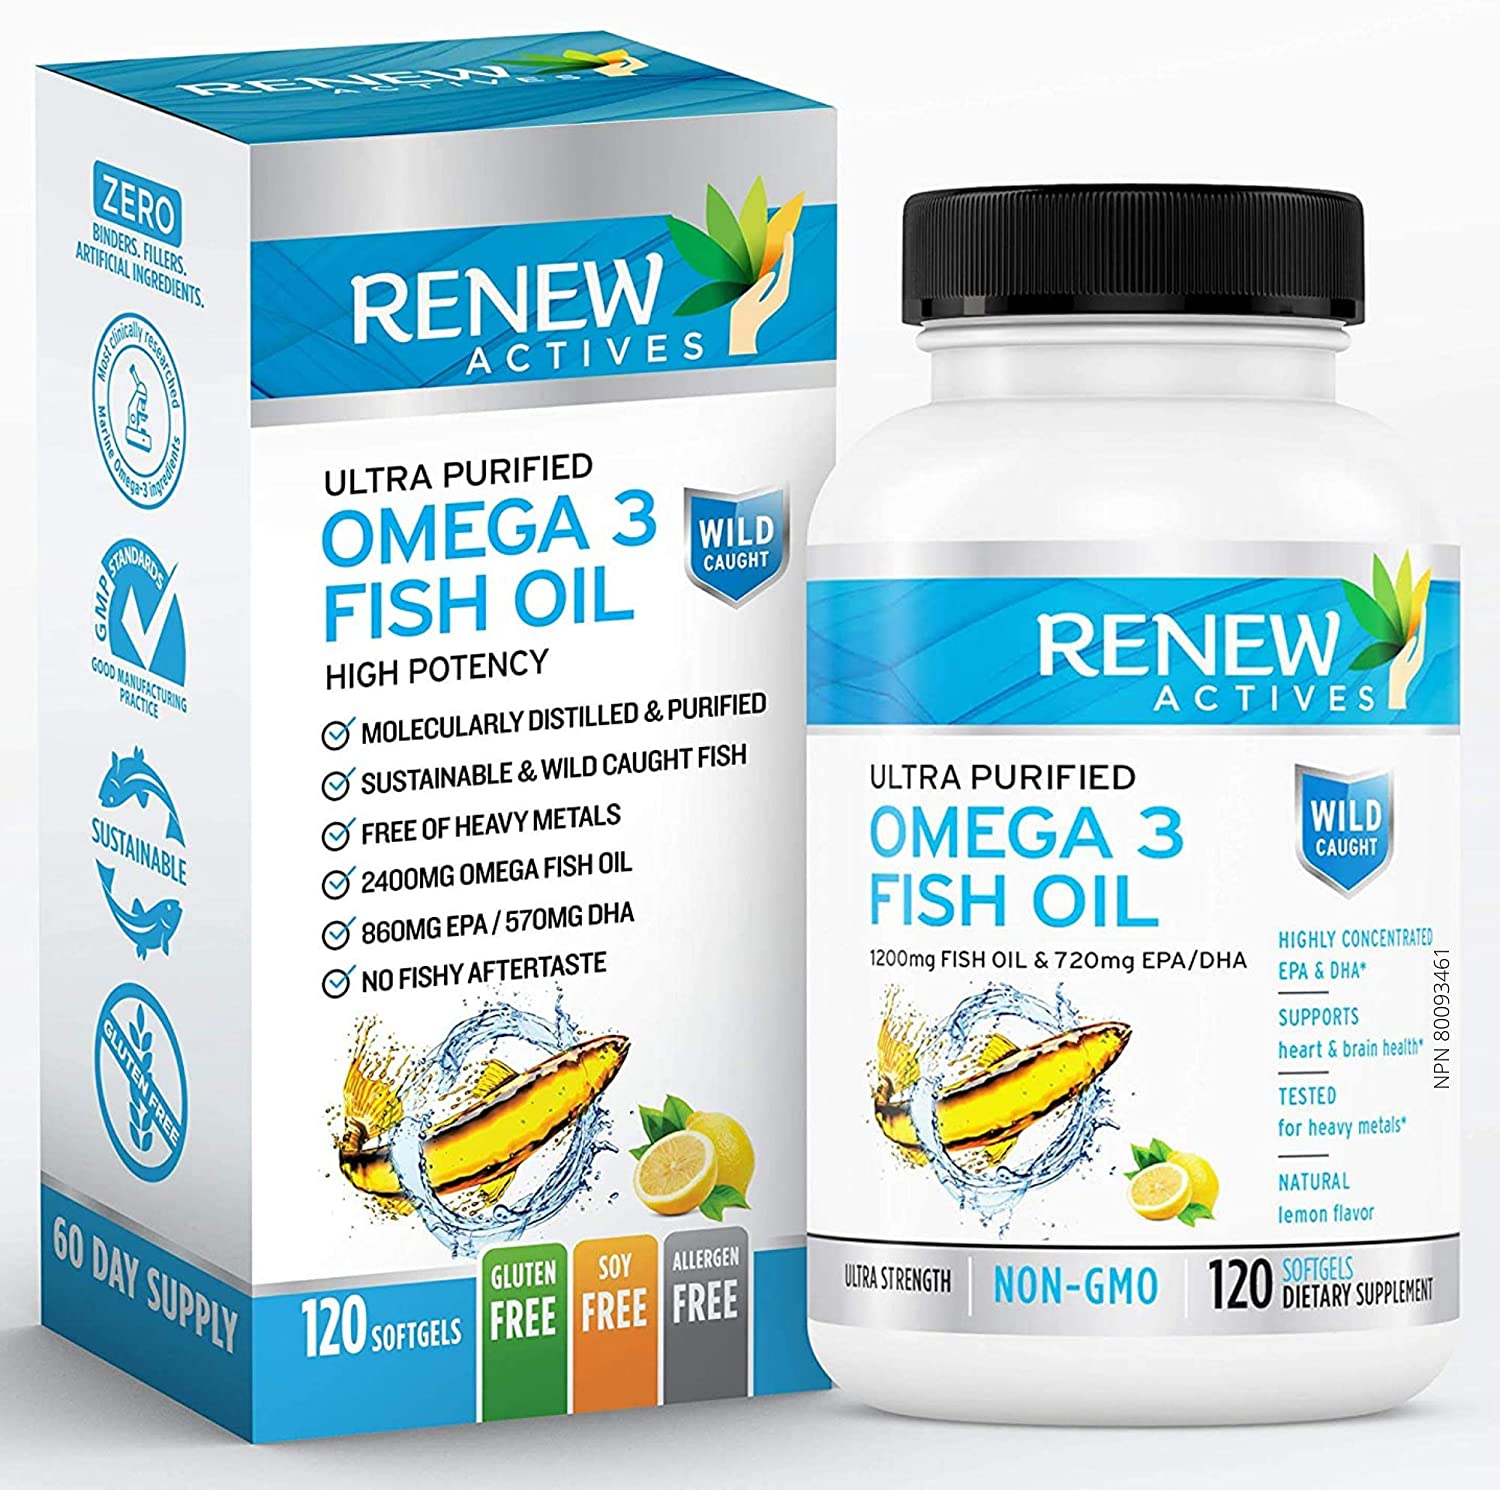 Omega-3 Fish Oil - 120 Softgels